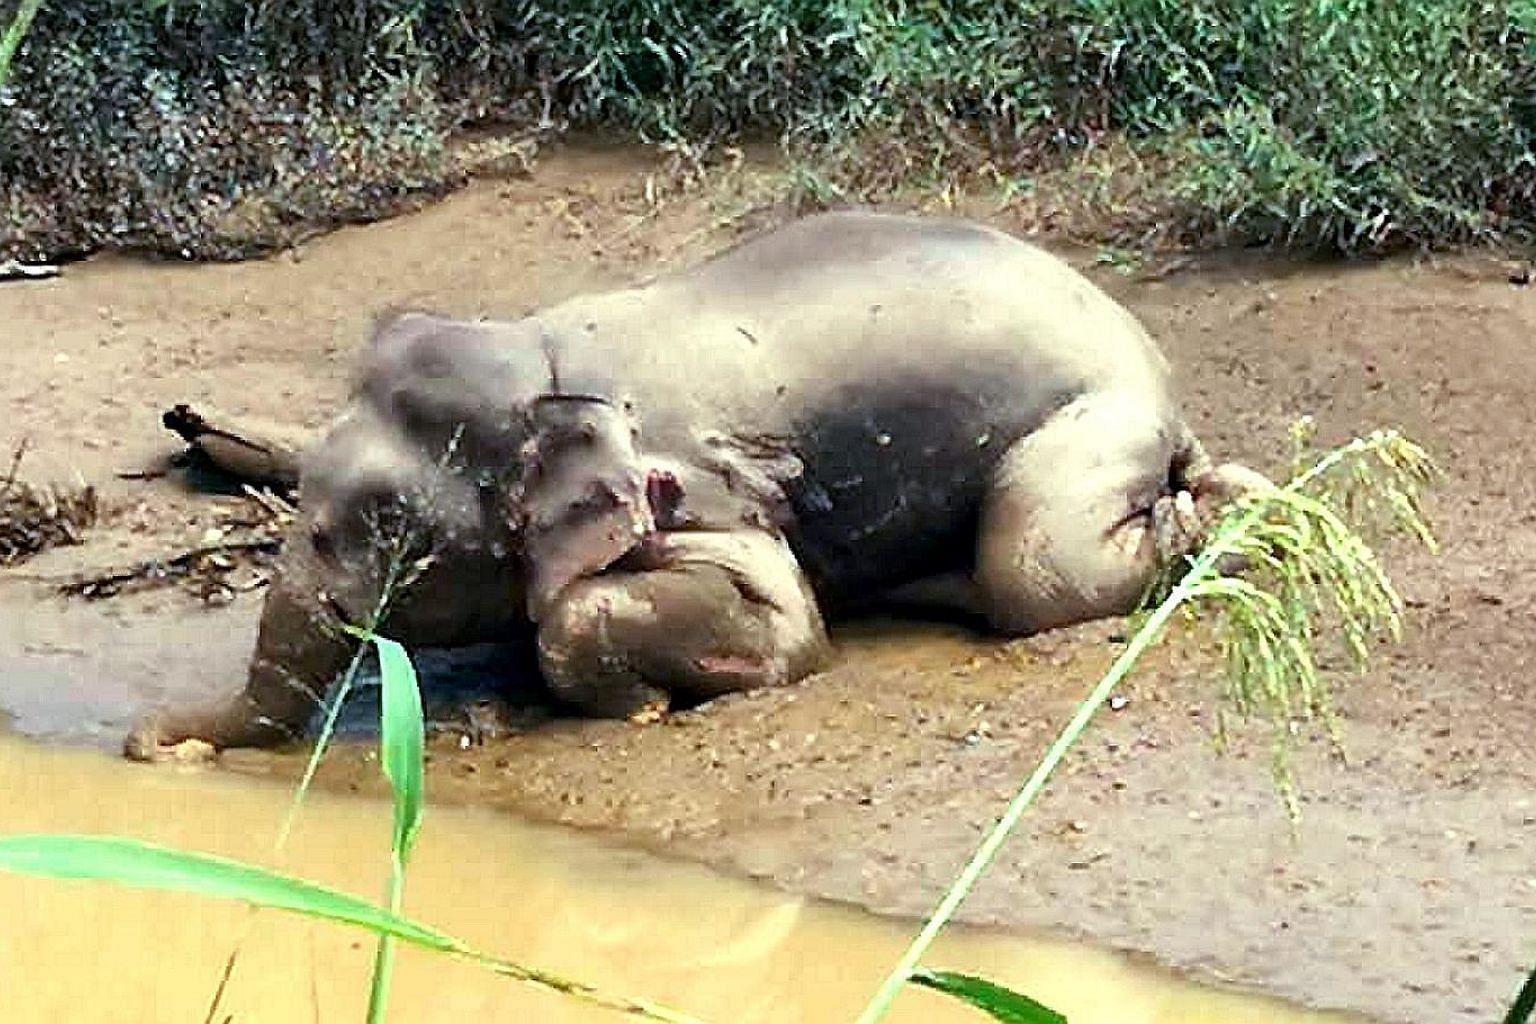 The Borneo pygmy elephant's body was found with more than 70 bullet wounds and its tusks removed.